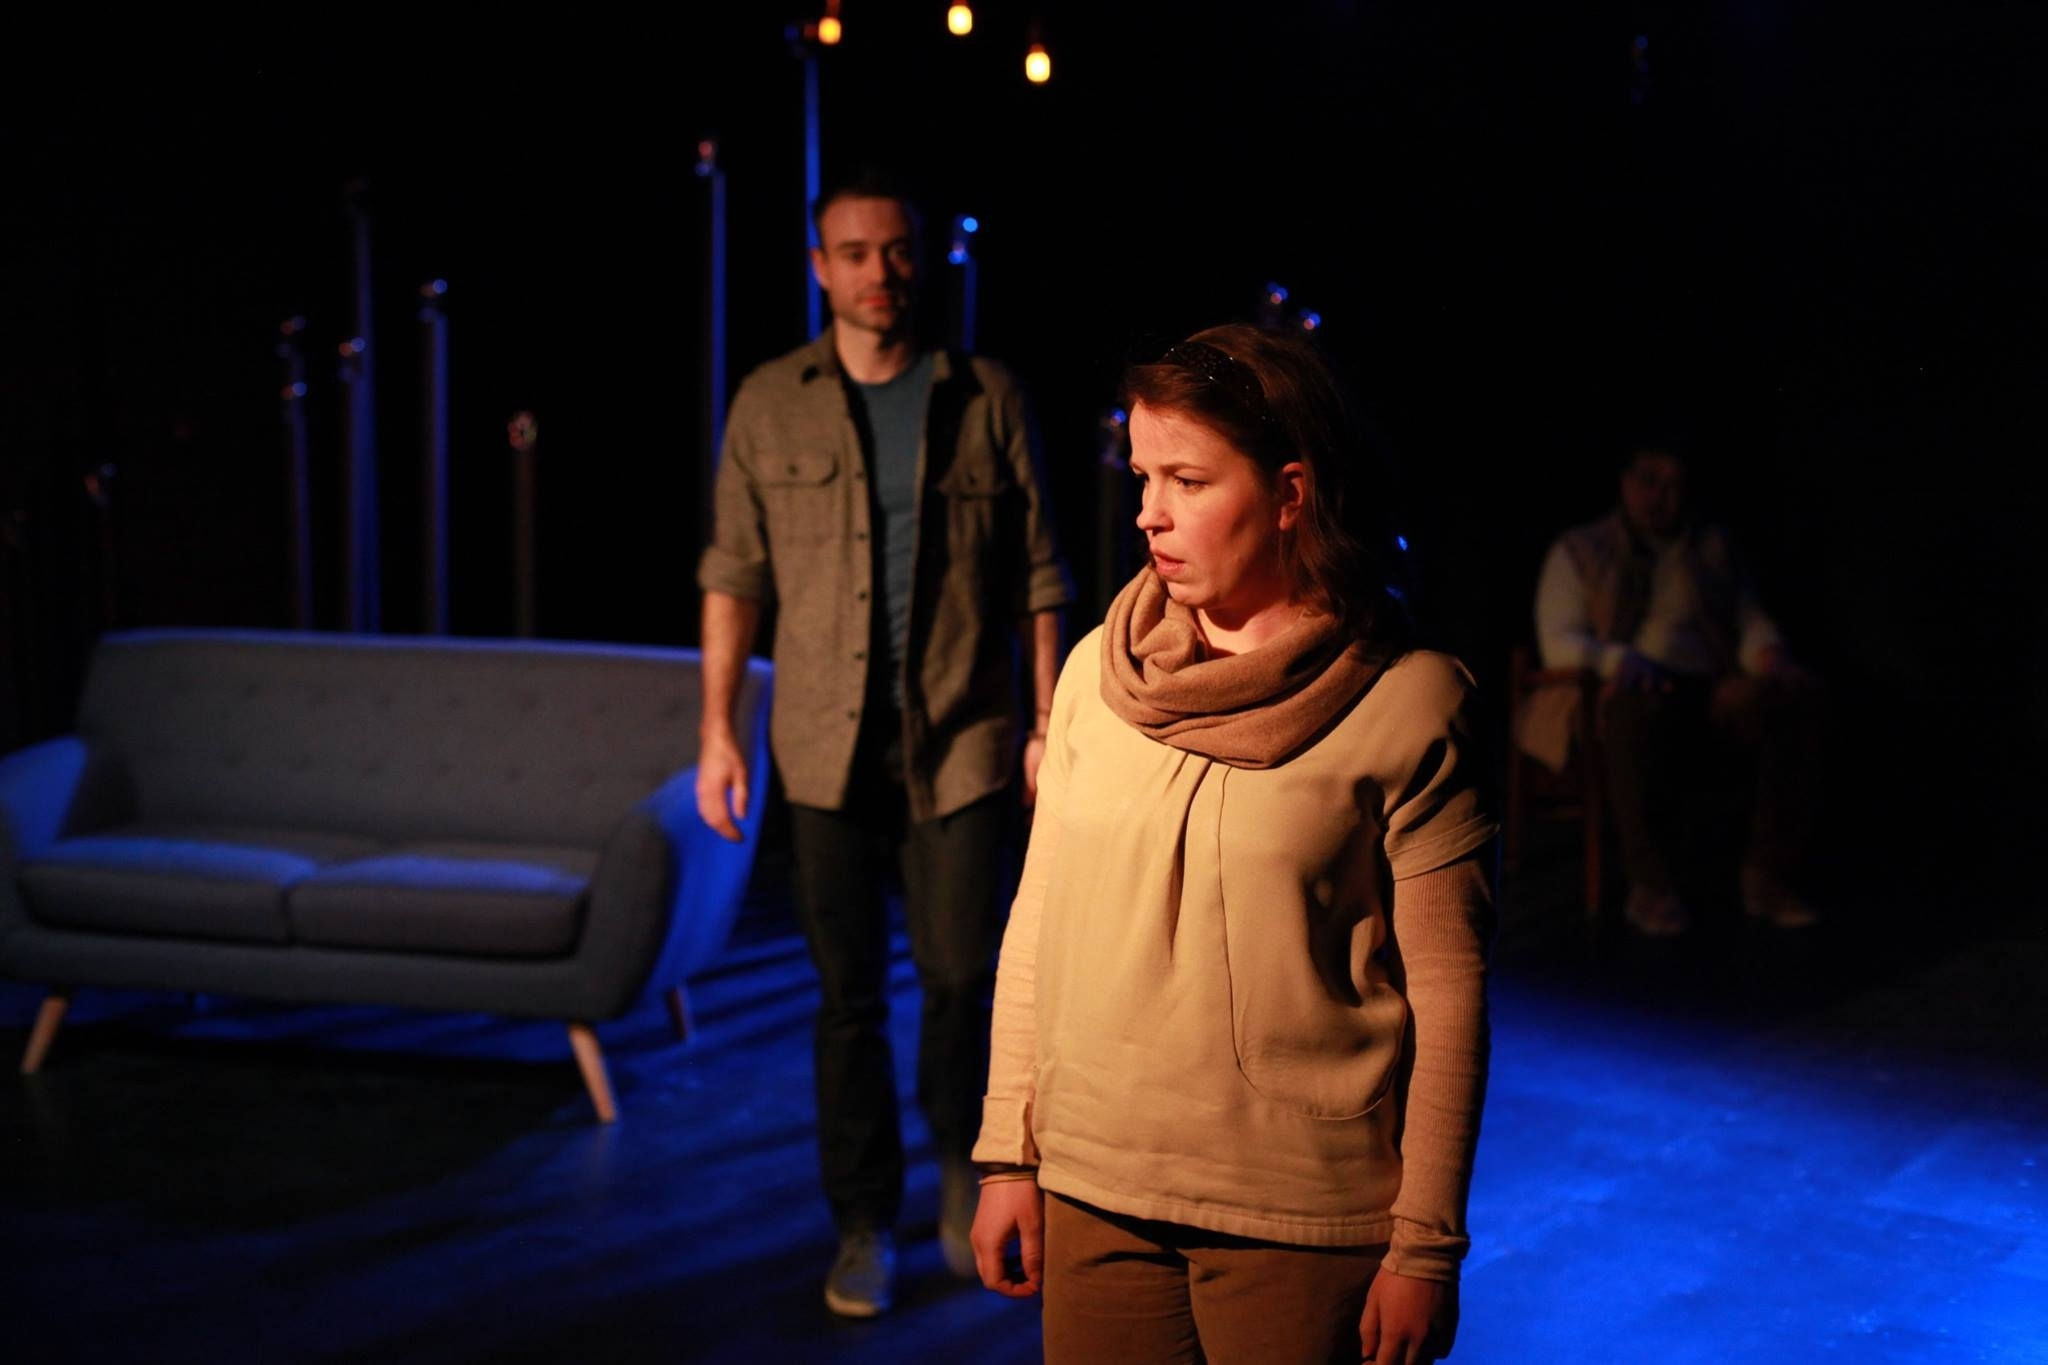 "NOTHING OF ME  -Akvavit Theatre    ""The finest performance is provided by talented Chicago actress Kirstin Franklin. Playing a range of characters, from a mother to a young child, this accomplished actress brings some much-appreciated depth to her narrative performance."" ---CHICAGO THEATER CRITIC     ""Franklin faces the daunting task of playing ages ranging from granddaughter to grandmother, which she accomplishes subtly and with no real costume change."" ---CHICAGO THEATRE BEAT      ""Franklin delivers by far the most interesting and grounded performances in the show."" ---TIME OUT CHICAGO"